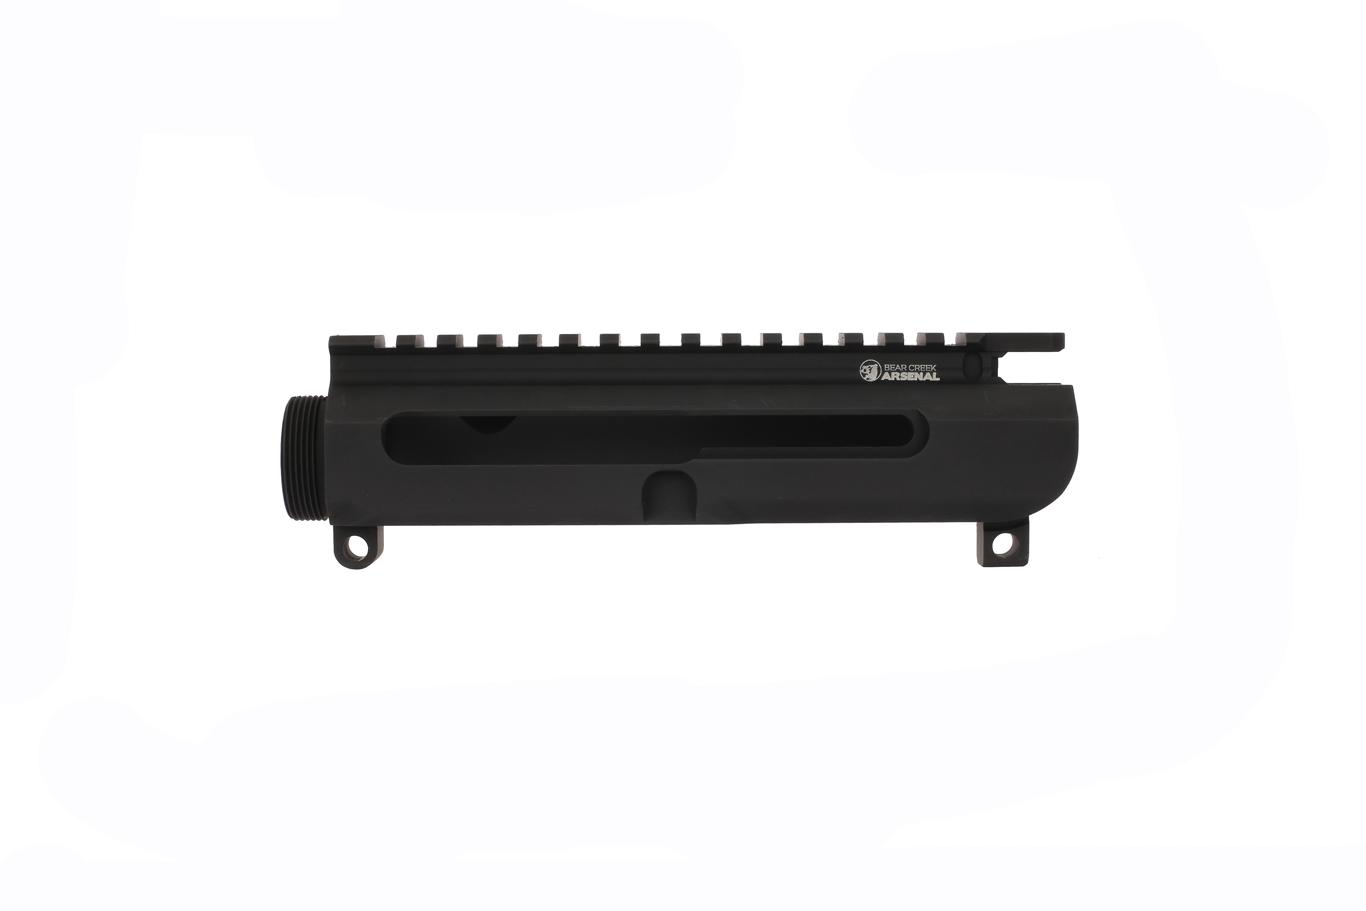 Bear Creek Arsenal AR-15 Left Handed Dual Charging Stripped Flat Top Upper Receiver